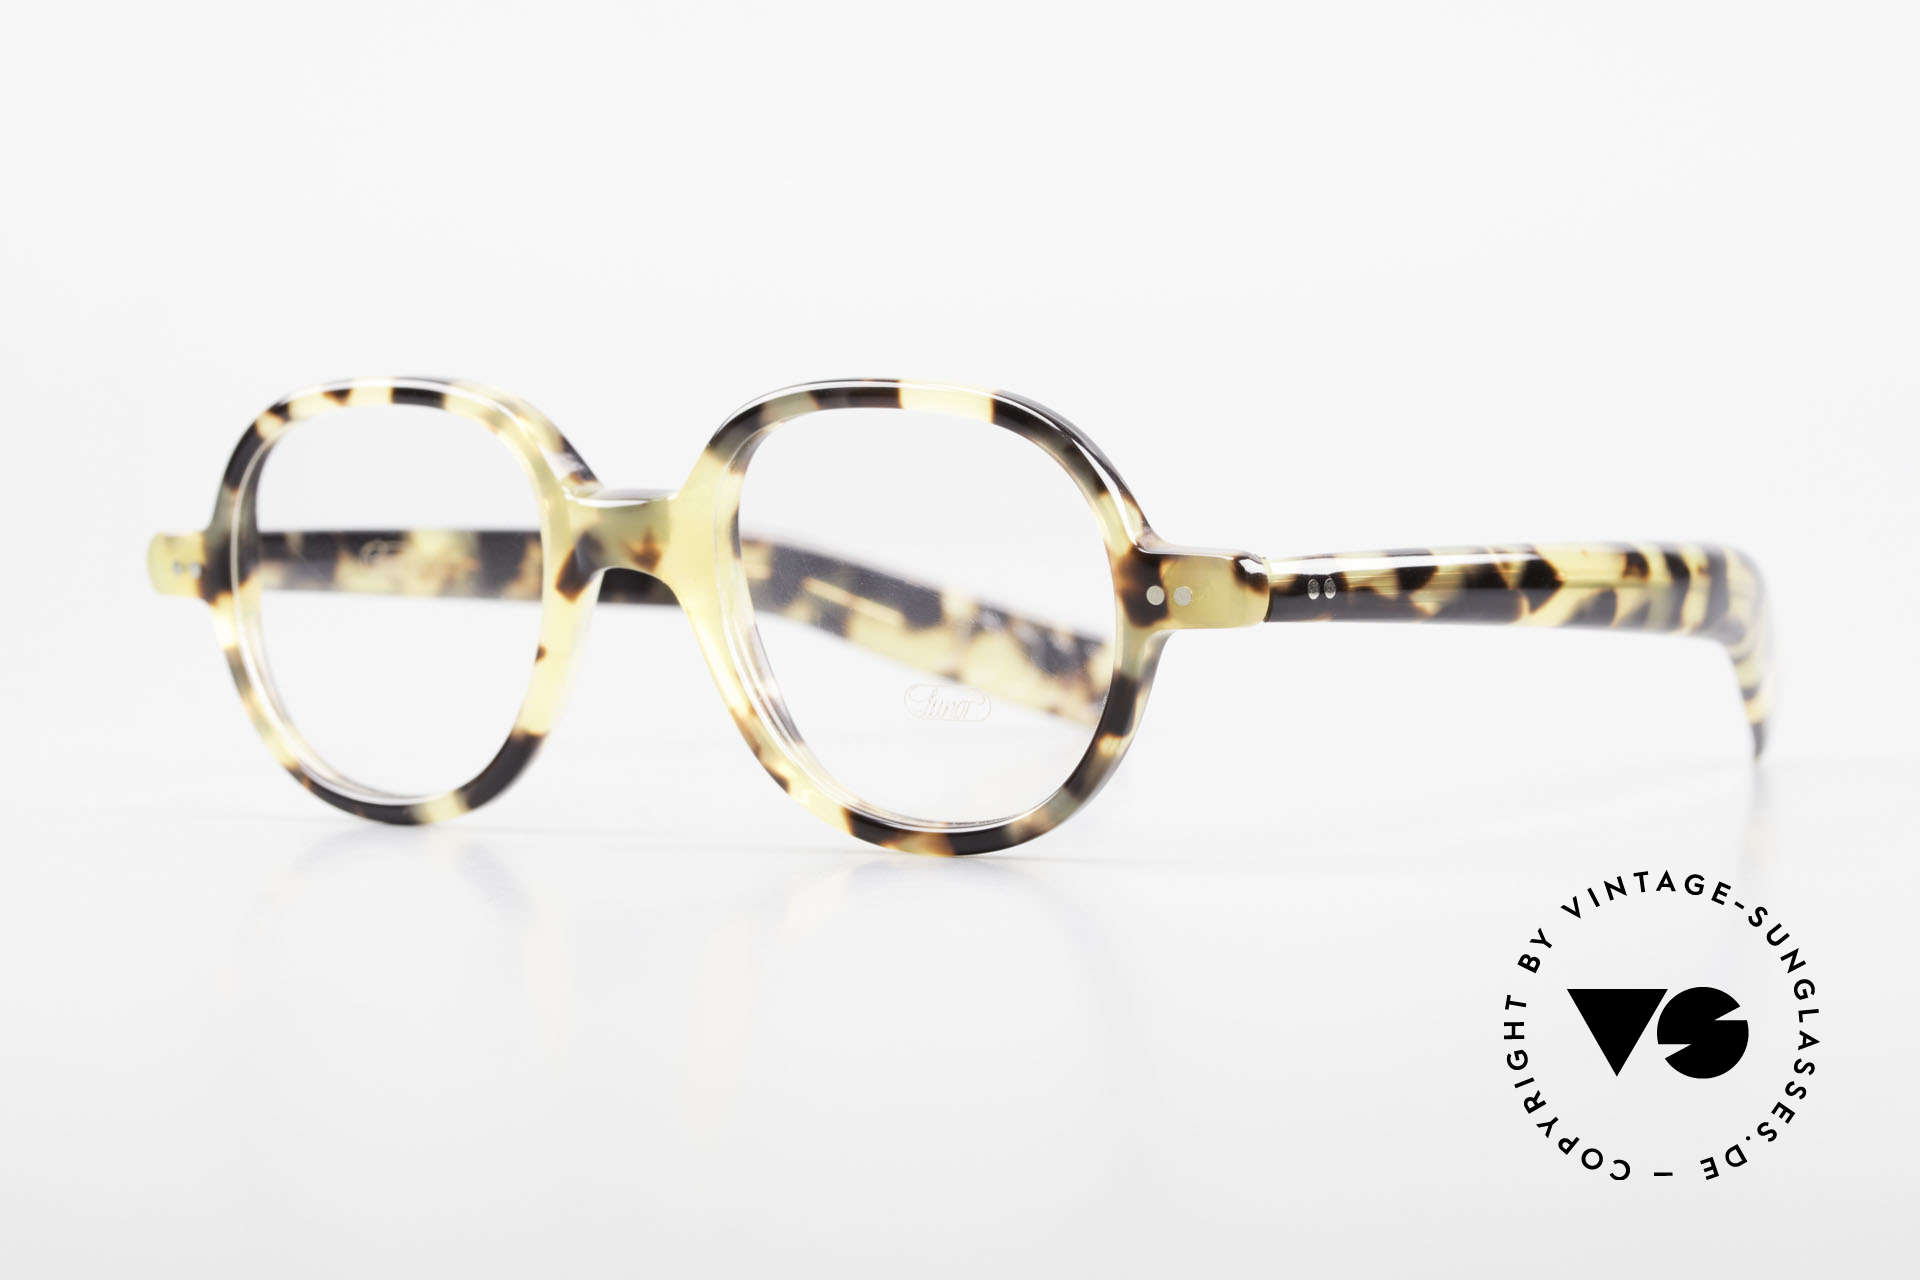 """Lunor A50 Round Lunor Glasses Acetate, round frame with a stylish """"TOKYO TORTOISE"""" pattern, Made for Men and Women"""